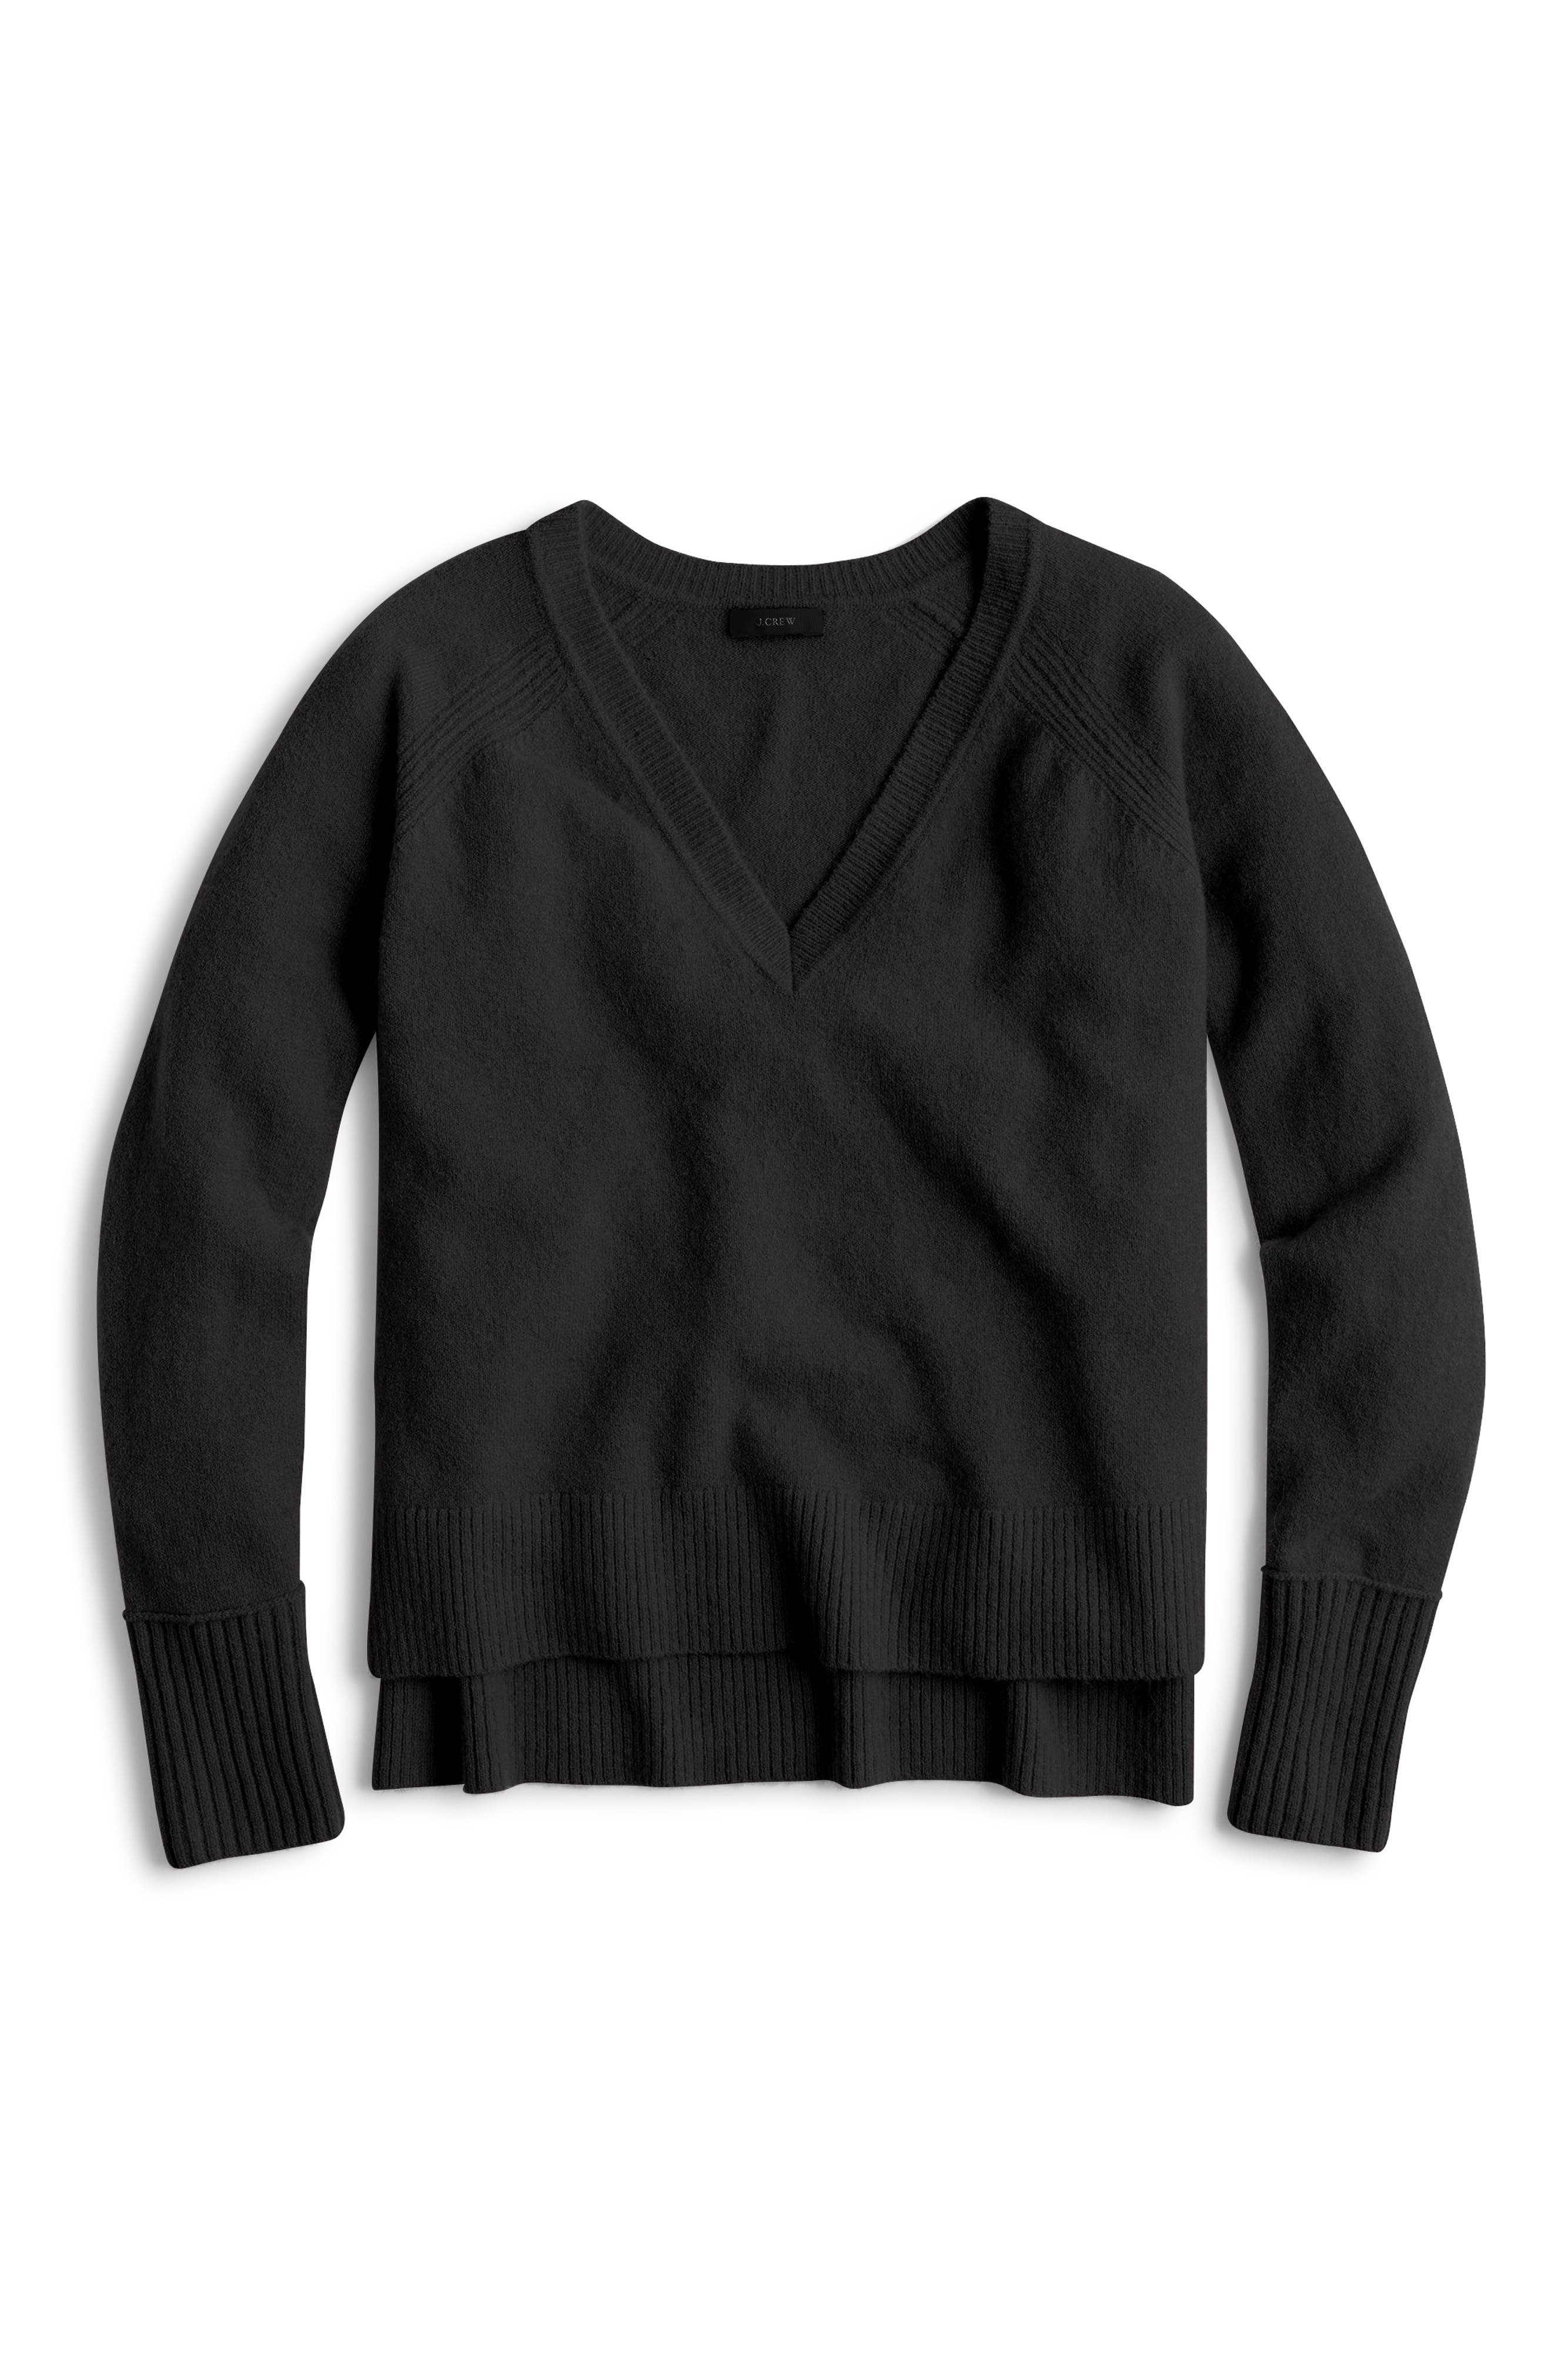 Supersoft Yarn V-Neck Sweater,                             Main thumbnail 1, color,                             BLACK